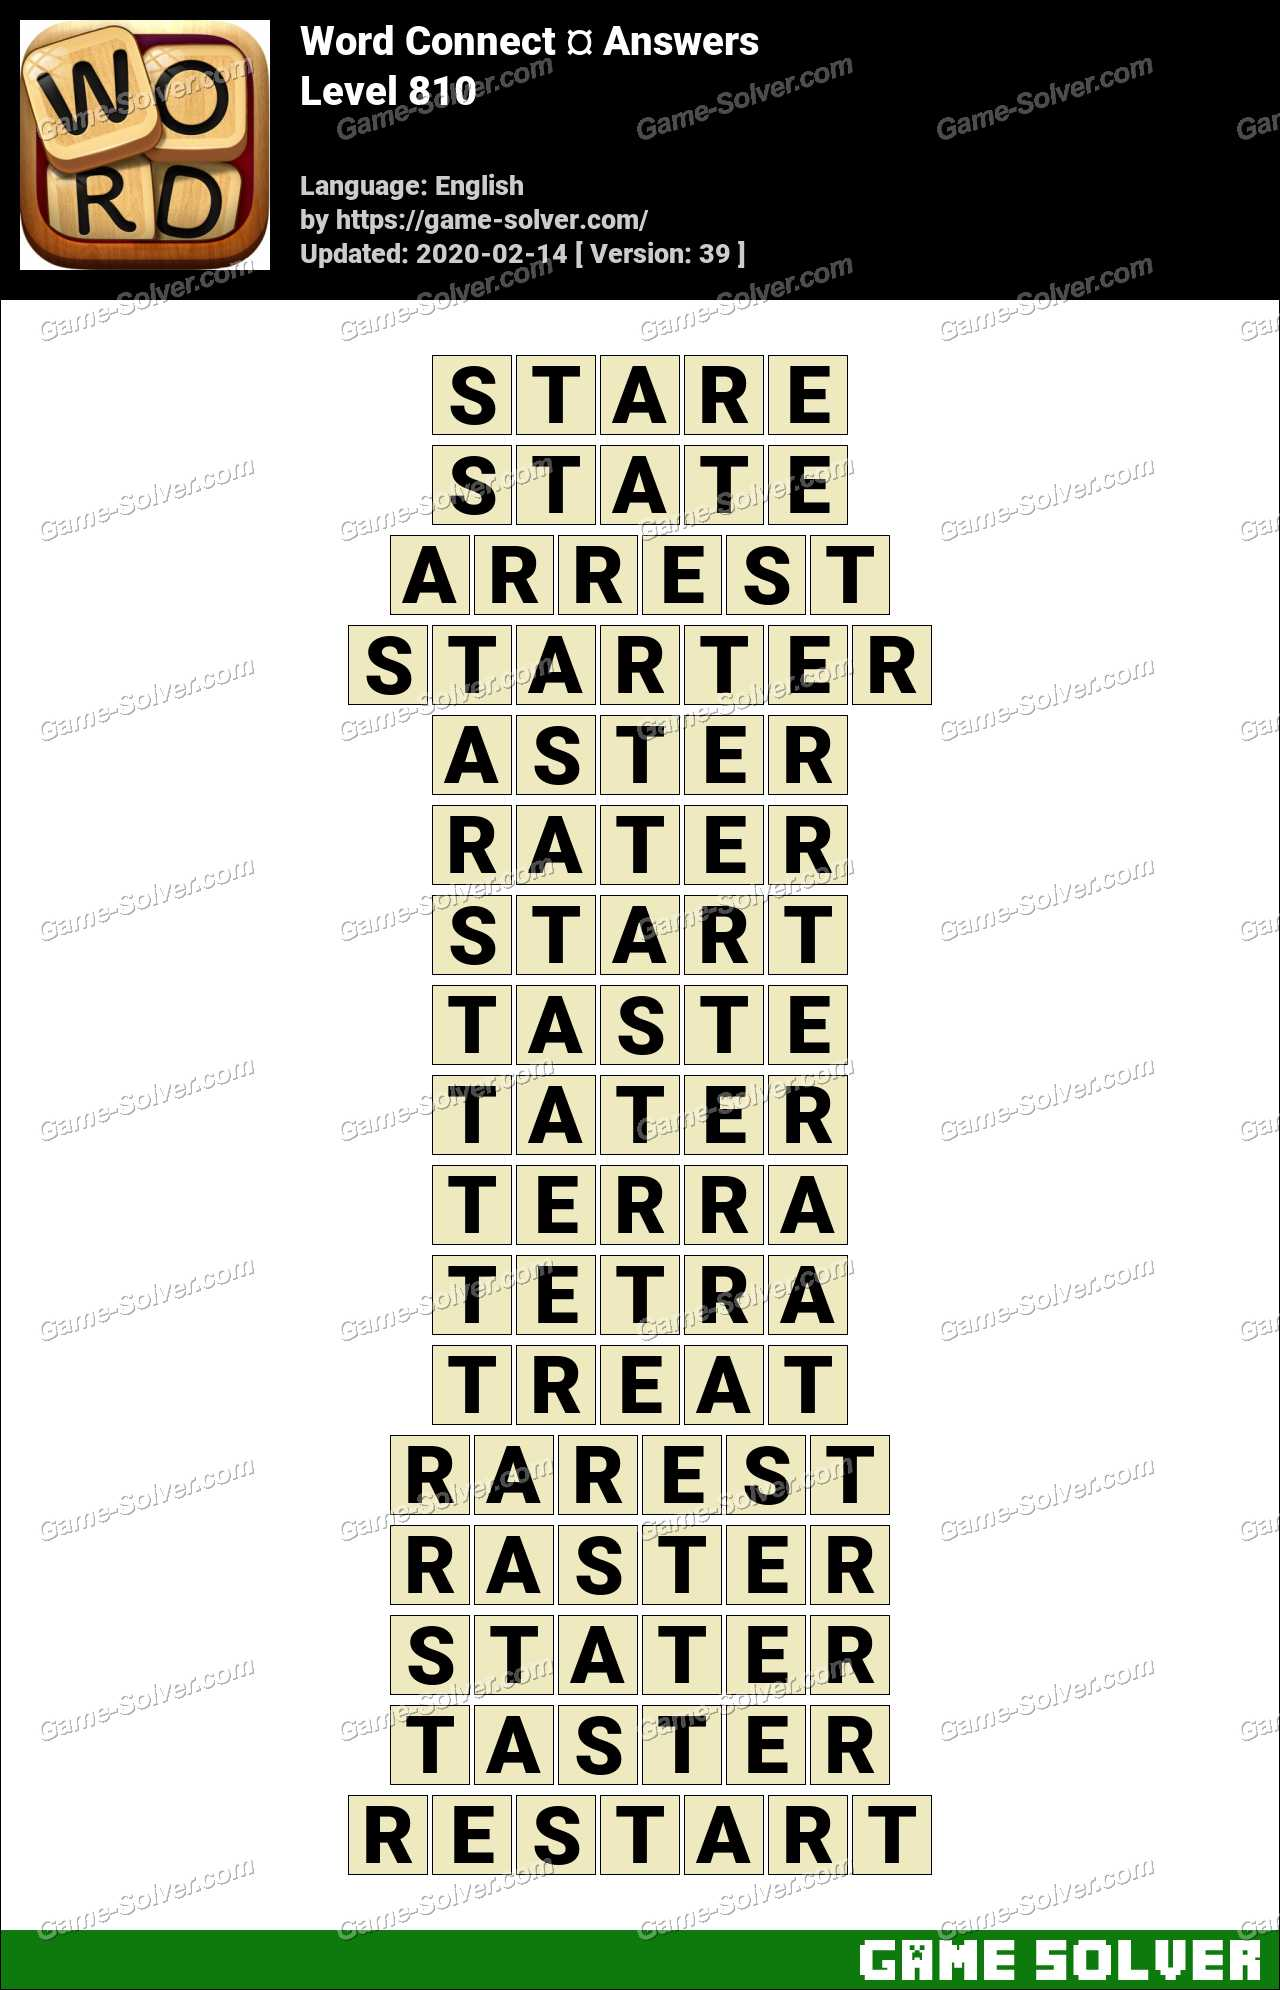 Word Connect Level 810 Answers